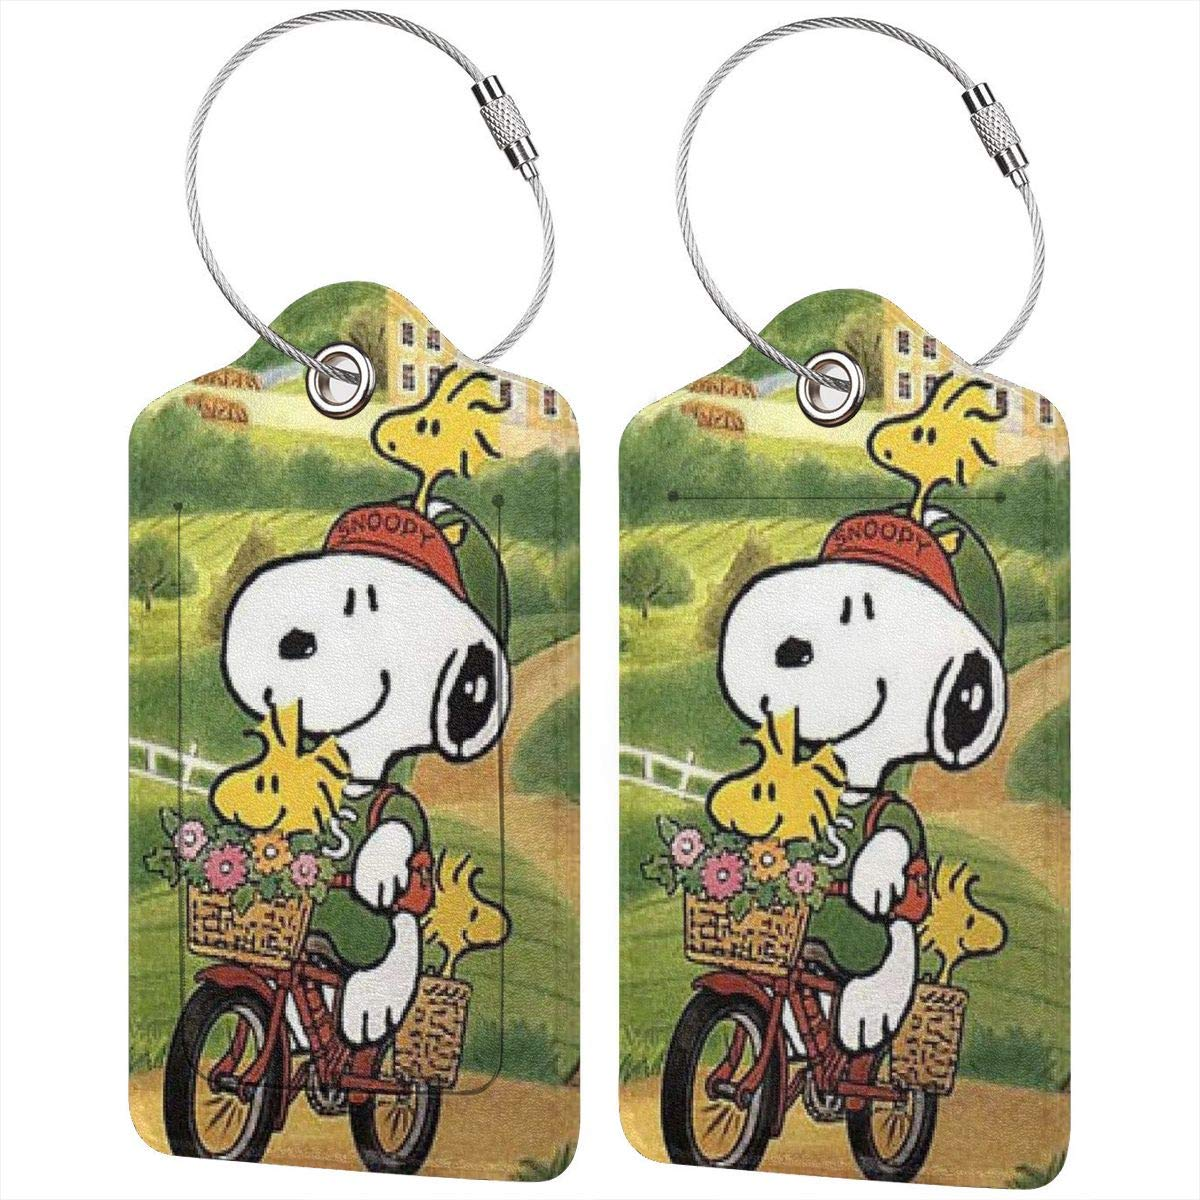 Suit For Travel,Vacation Fashion Snoopy And His Life Soft Leather Luggage Tags With Privacy Cover 1-4 Pcs Choose